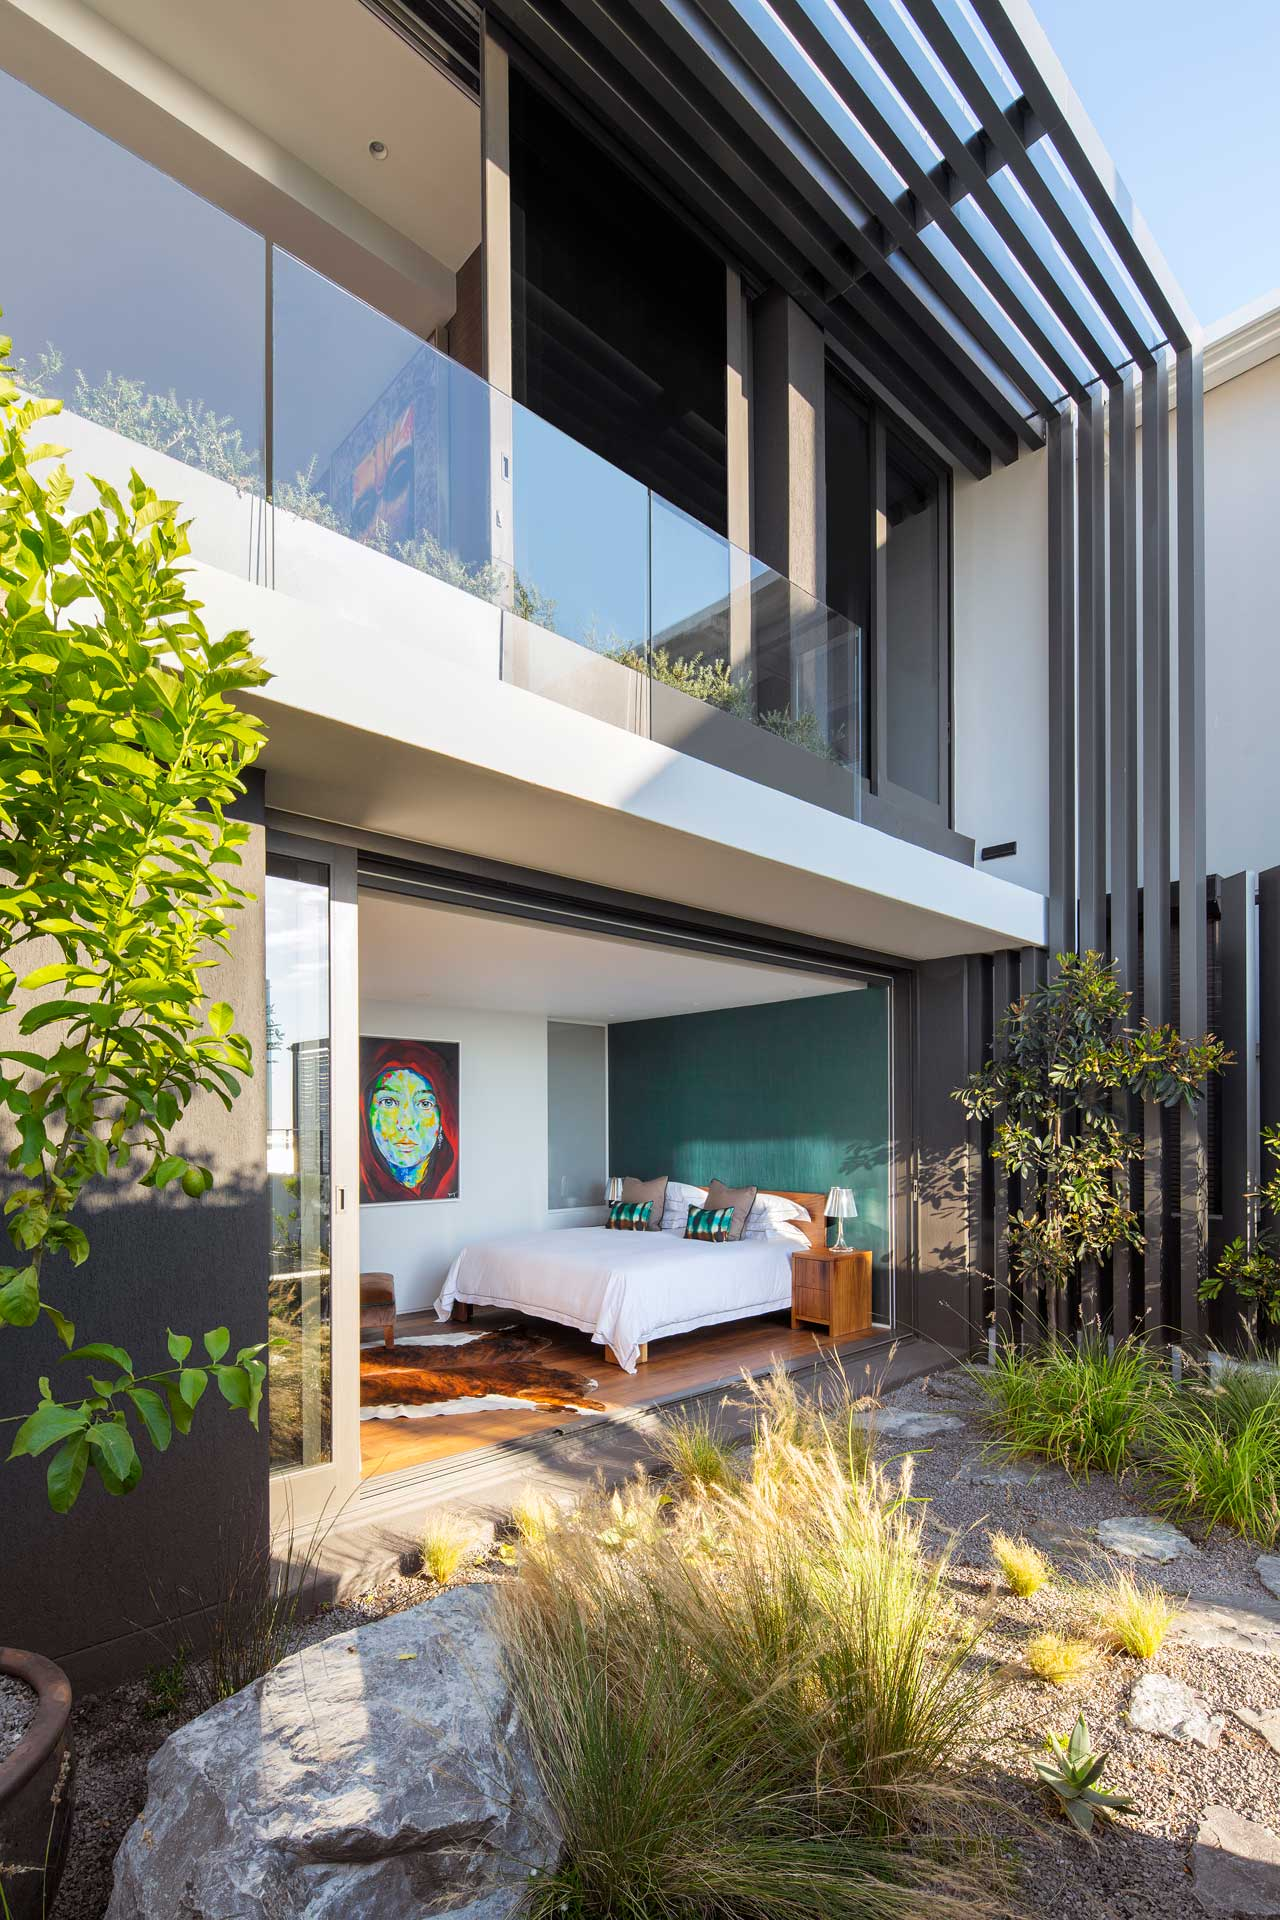 House sealion the coolector a superb example of the design skills of the team at greg wright architects and a first class property in its own right this cape town dwelling really does malvernweather Images